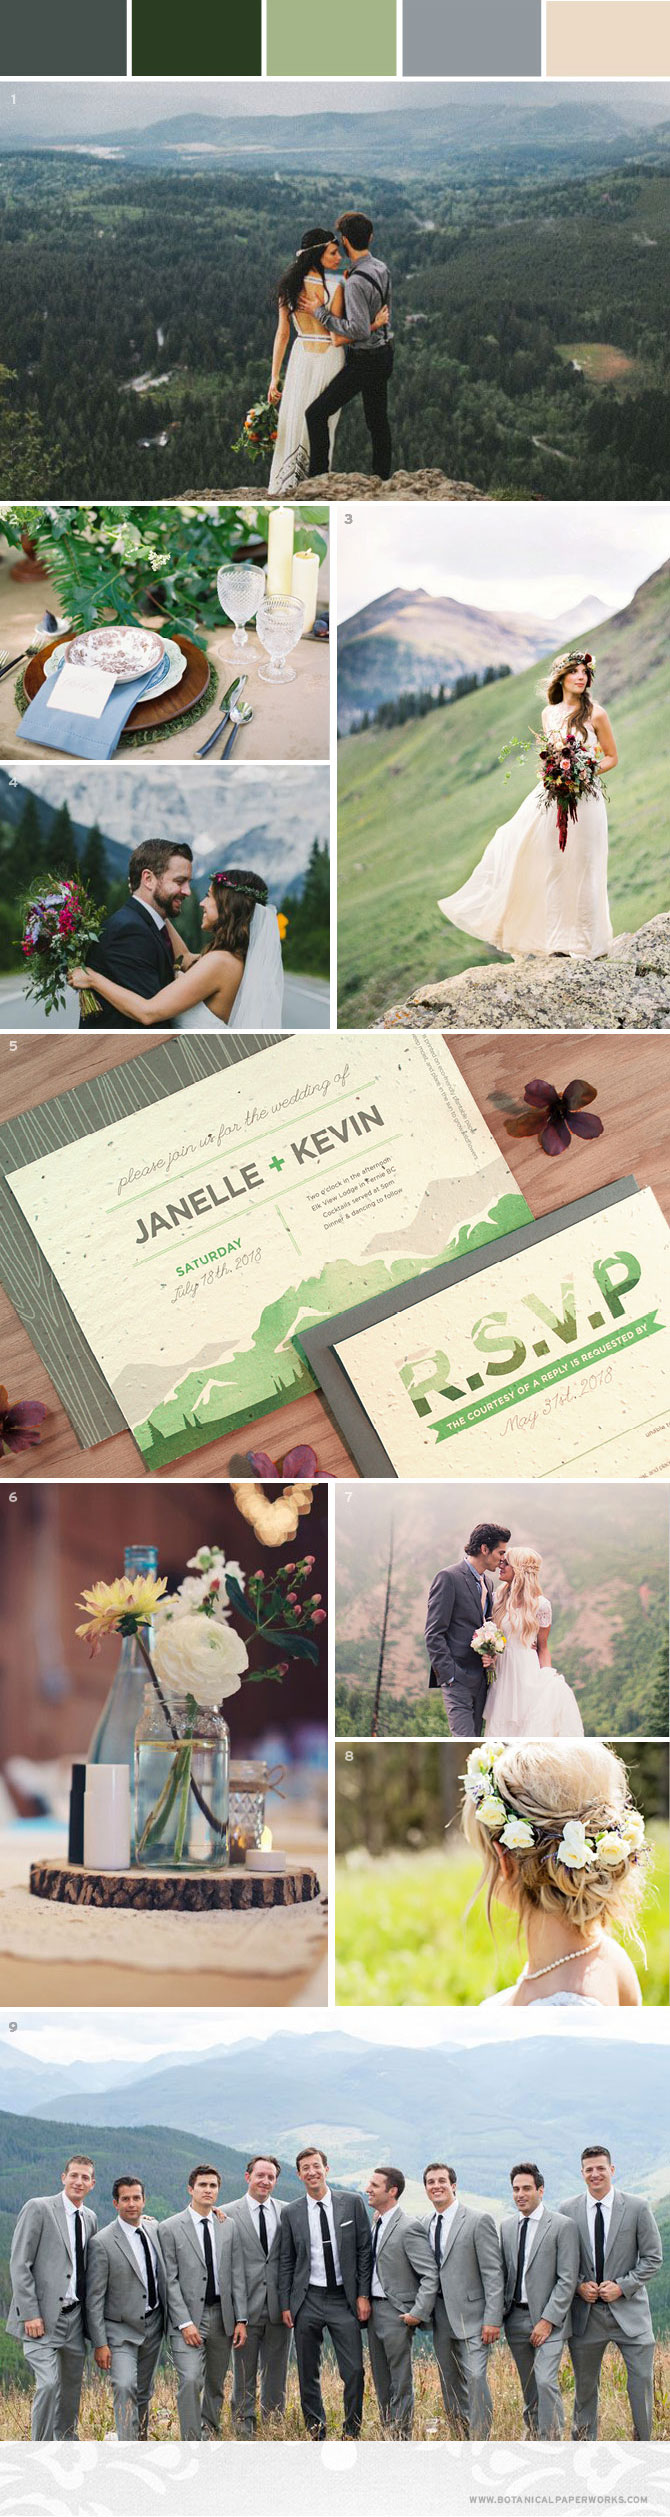 Get inspired by high peaks, rolling hills and awe-inspiring views with this #Mountain #Wedding #InspirationBoard. #WeddingPlanning